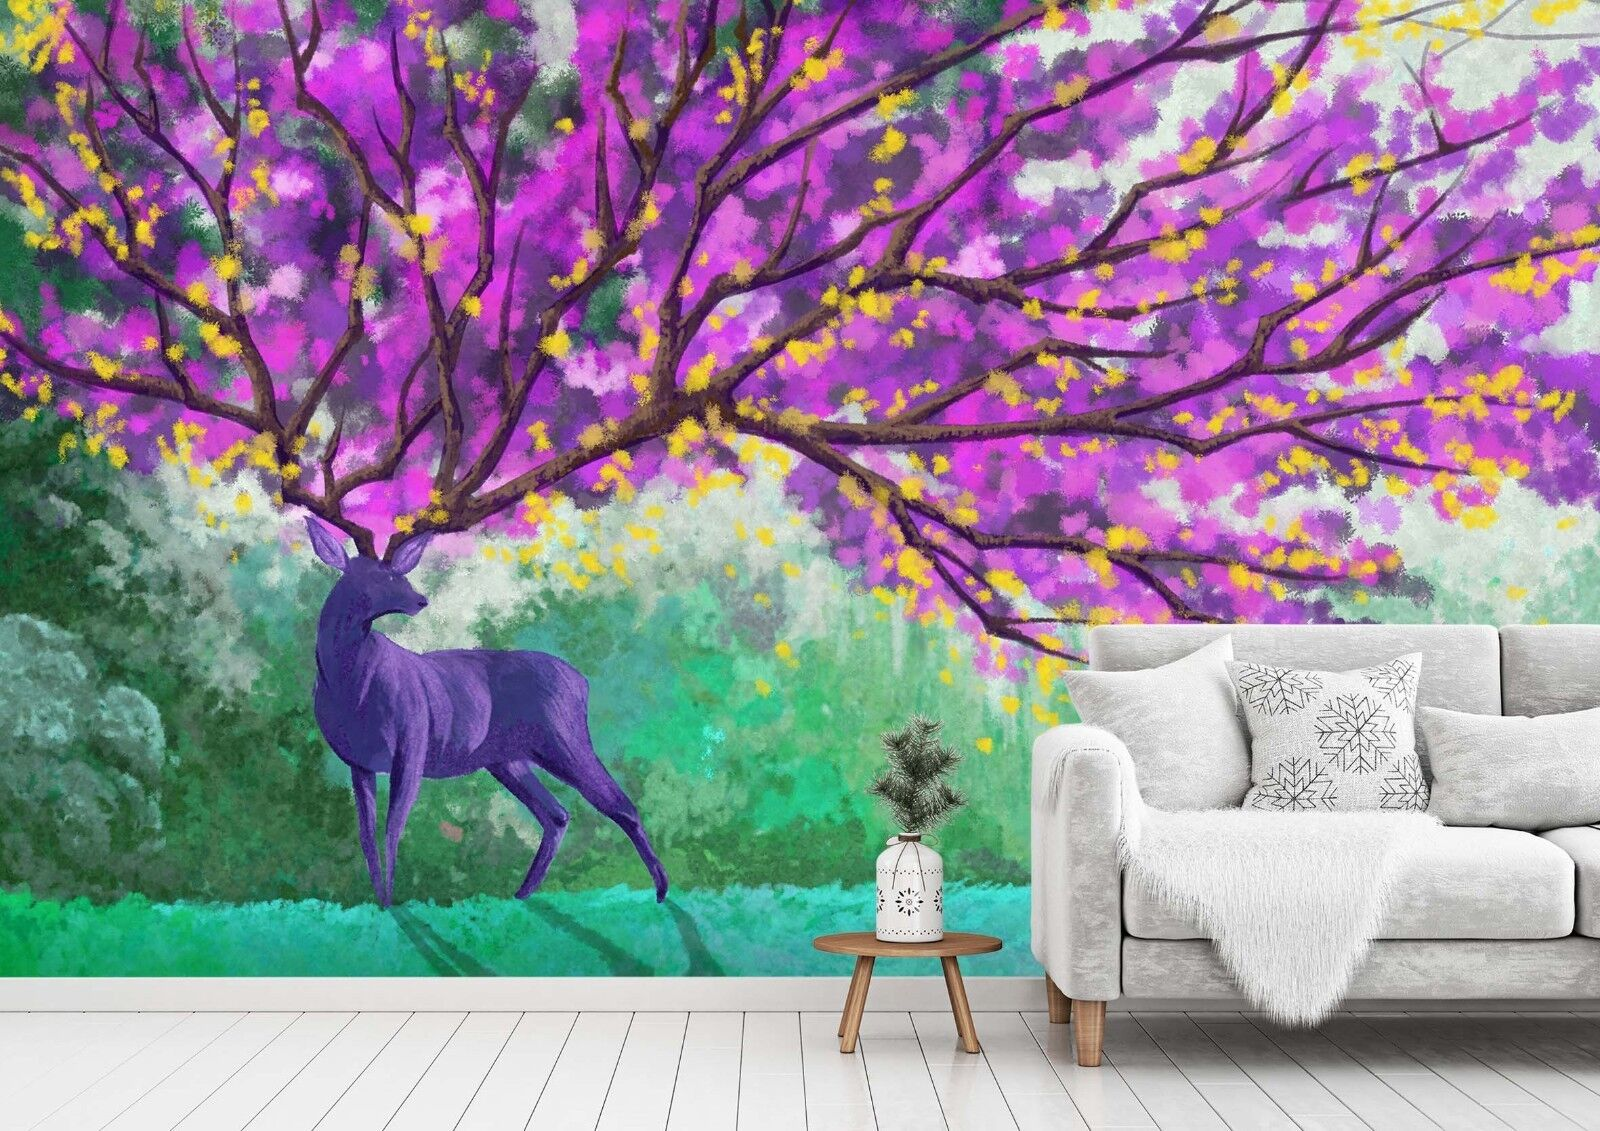 3D Tree Deer 7134 Wall Paper Print Wall Decal Deco Indoor Wall Murals US Summer